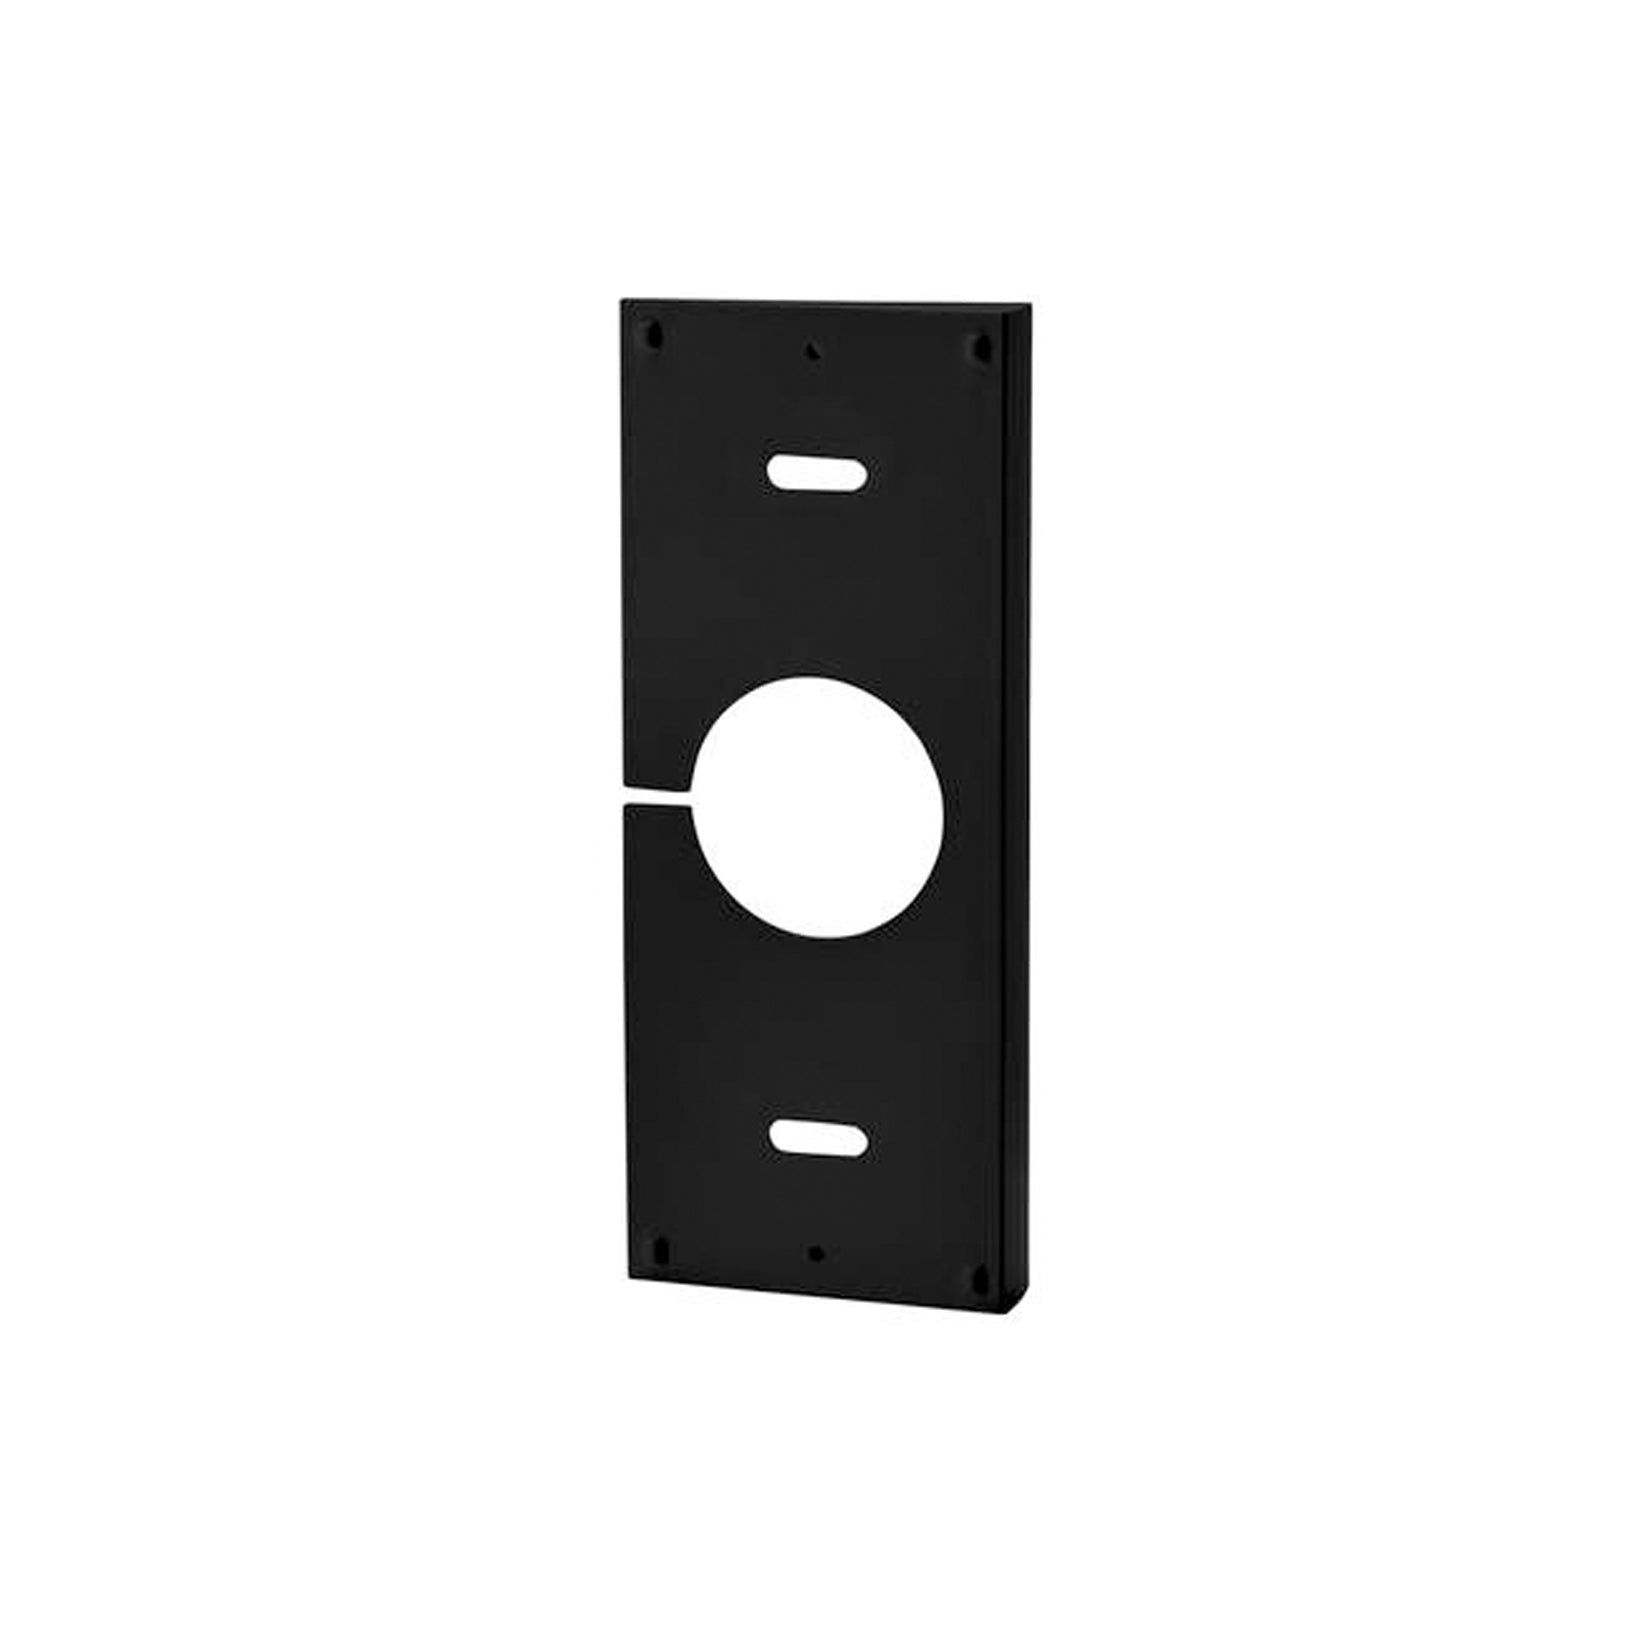 Ring Corner Kit Mounting for Video Doorbell Pro (side to side angles)